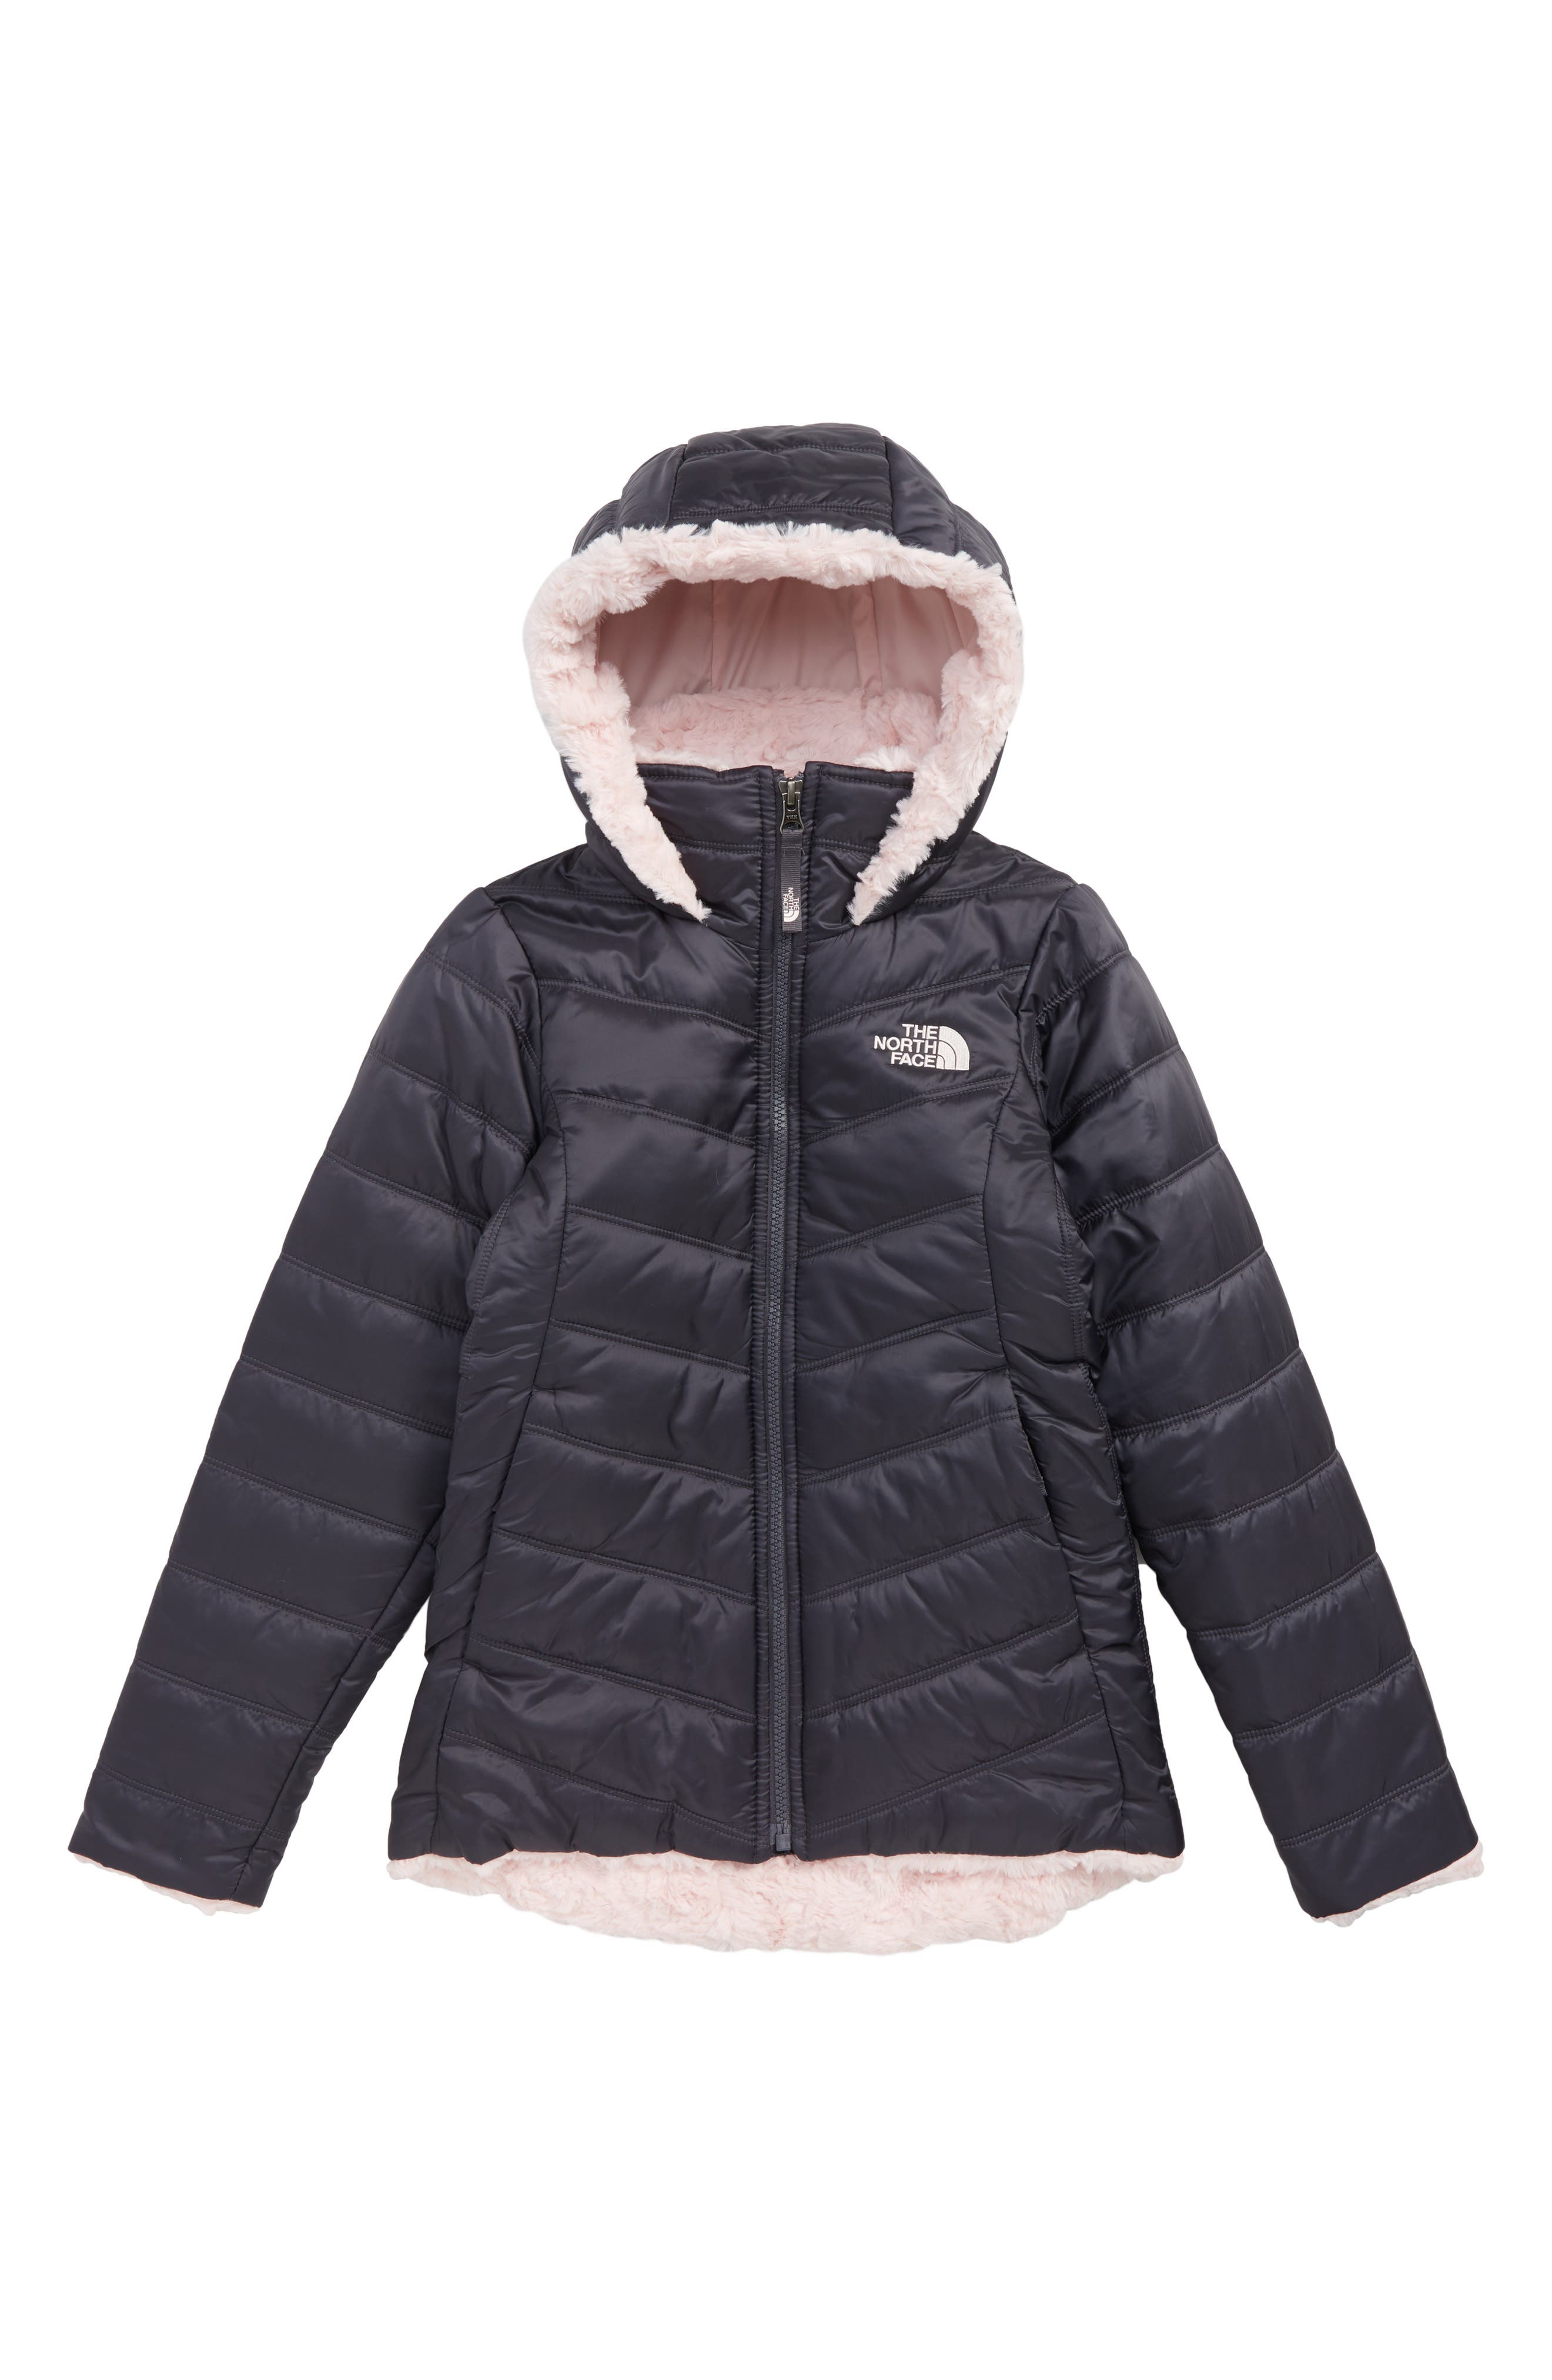 THE NORTH FACE, Mossbud Swirl Reversible Hooded Parka, Main thumbnail 1, color, 021